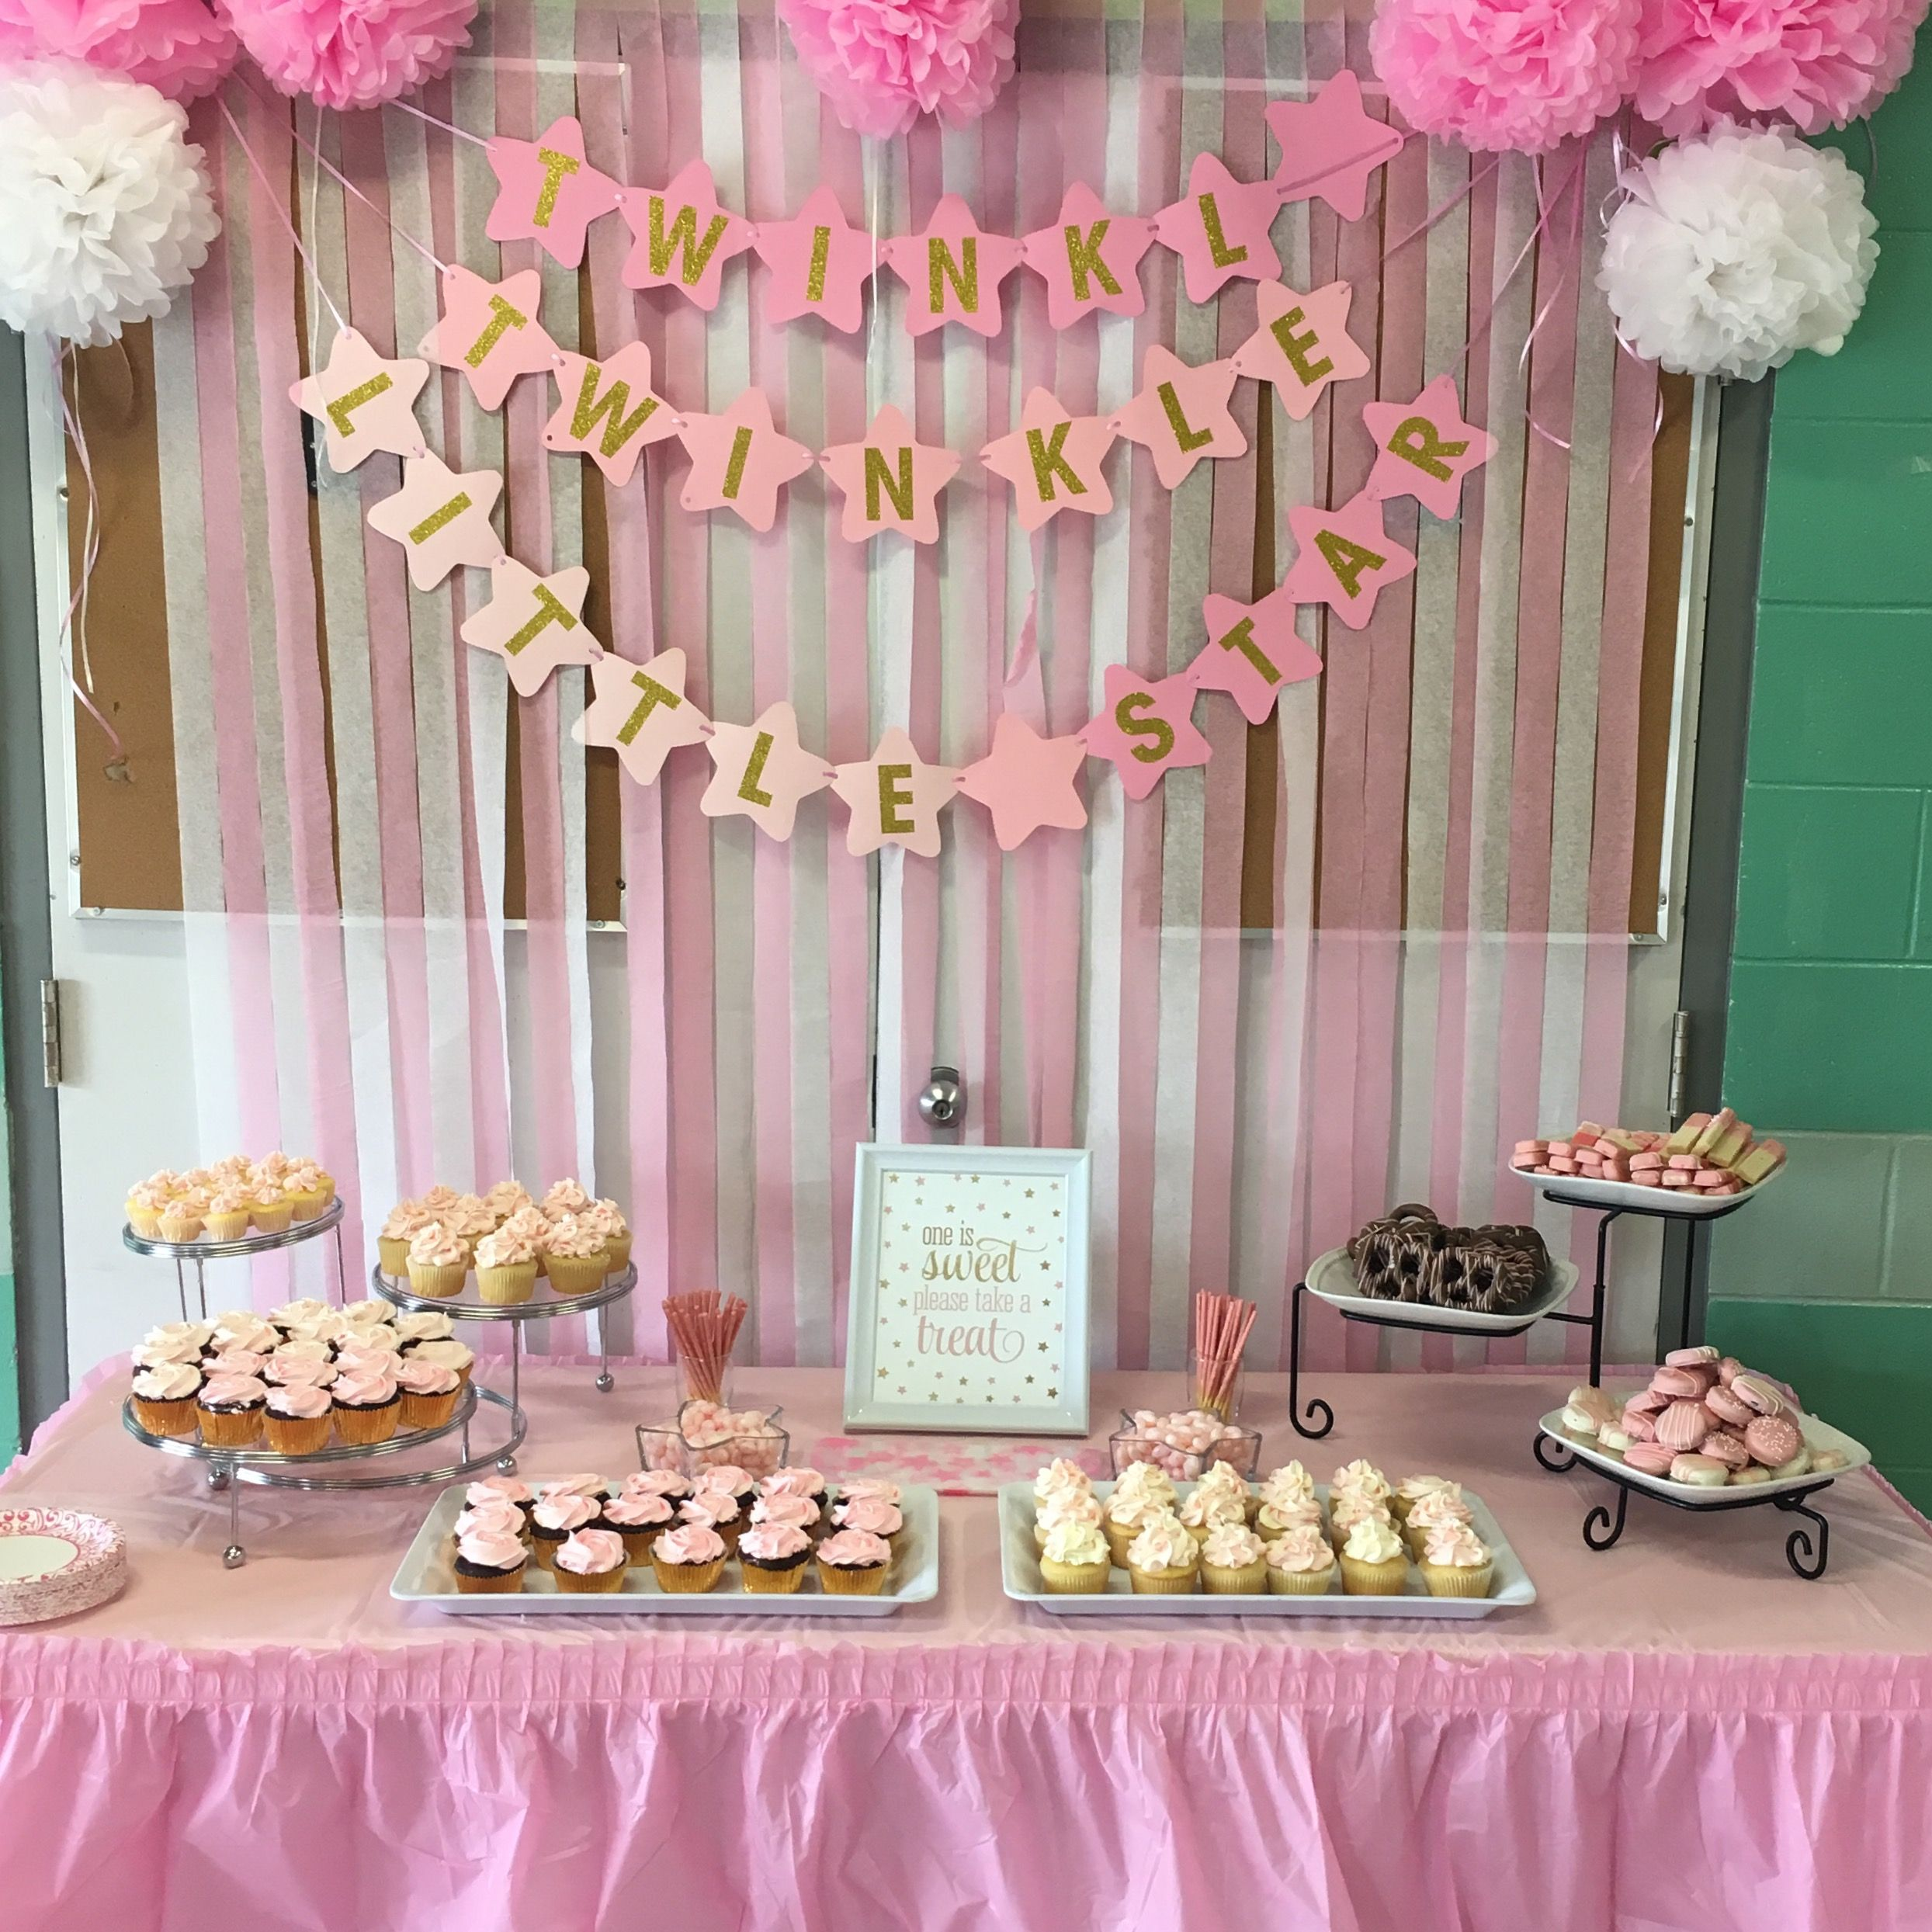 The Centre Of The Party Room A Pink And Gold Themed Sweet Table